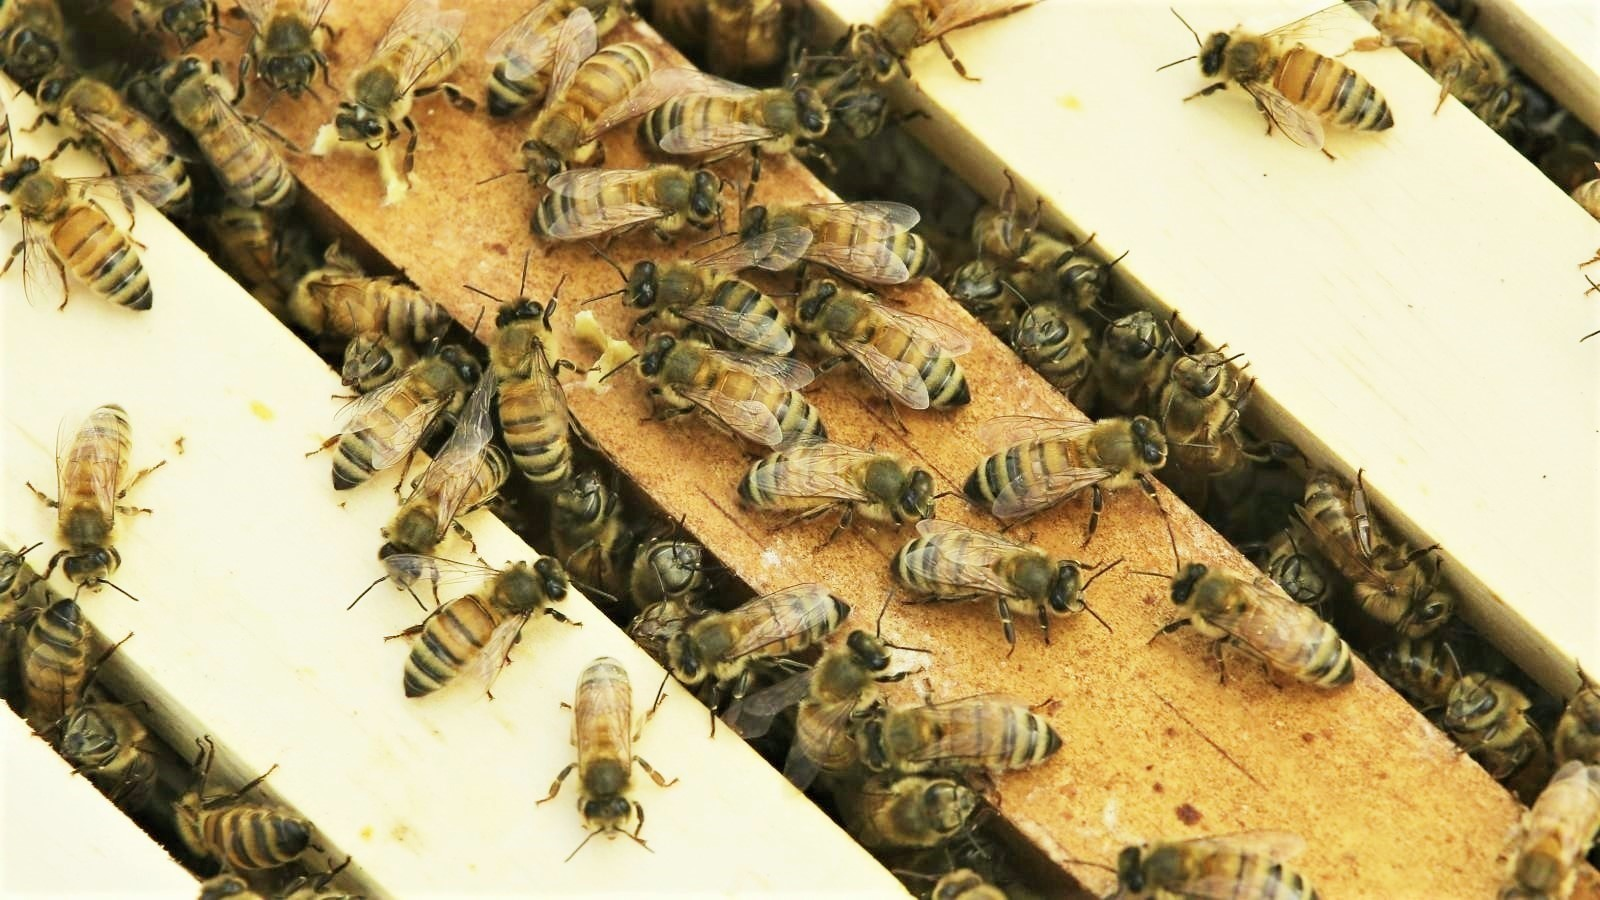 honeybees in Africa 1-10-19.jpg